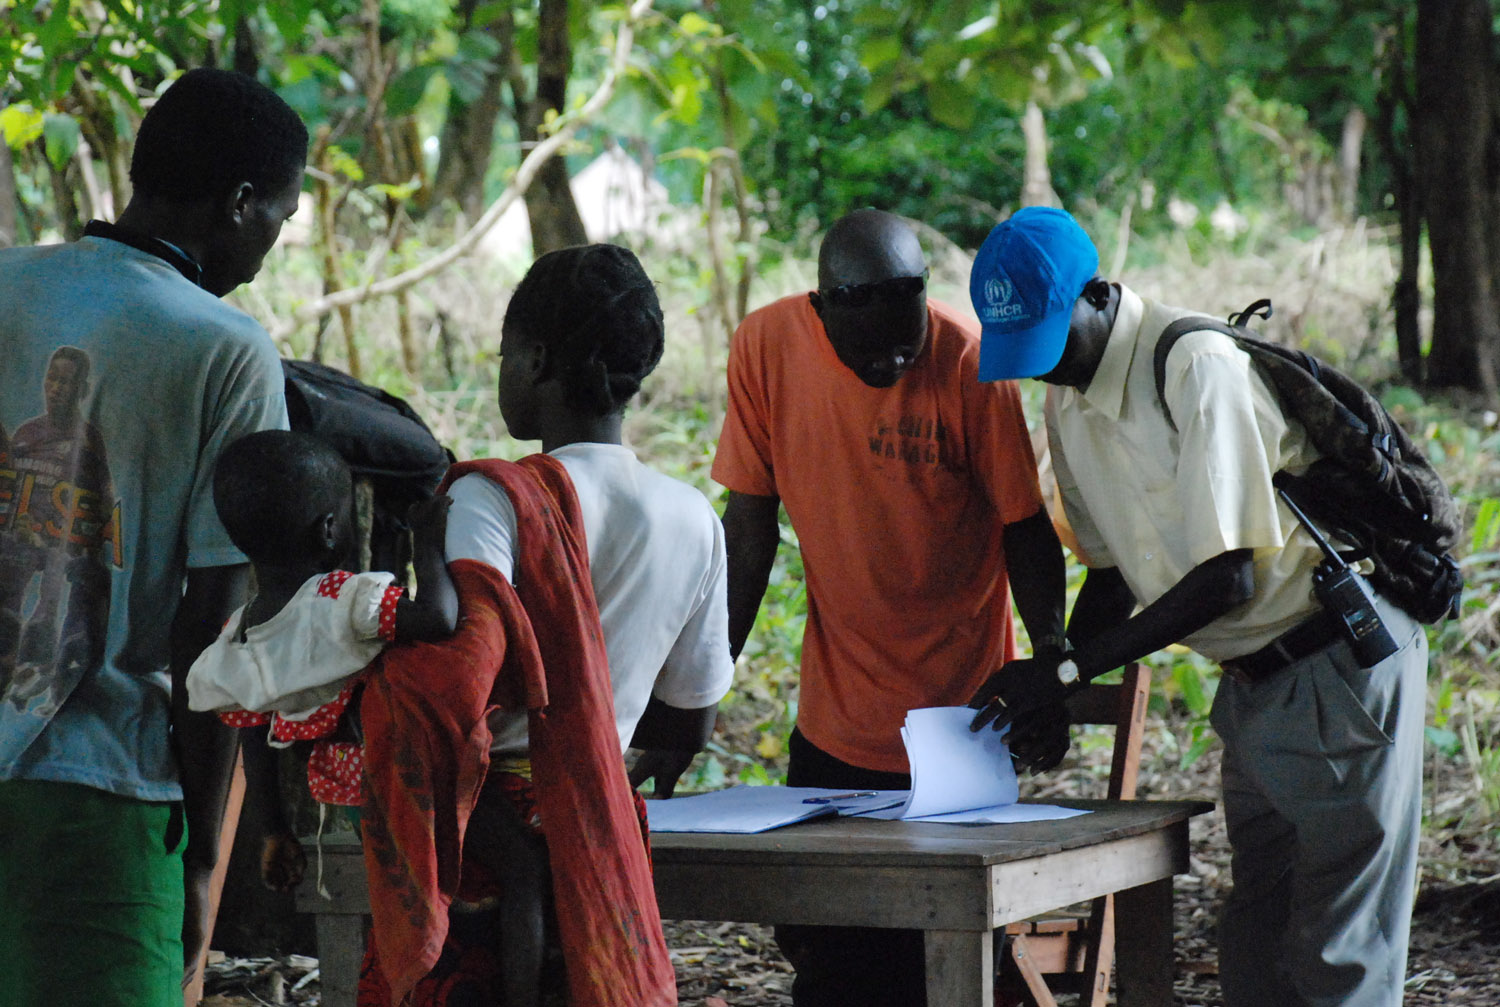 Refugees from the DR Congo fleeing LRA rebel attacks register with UNHCR officials at a forest clearing in the village of Gangura in southern Sudan.